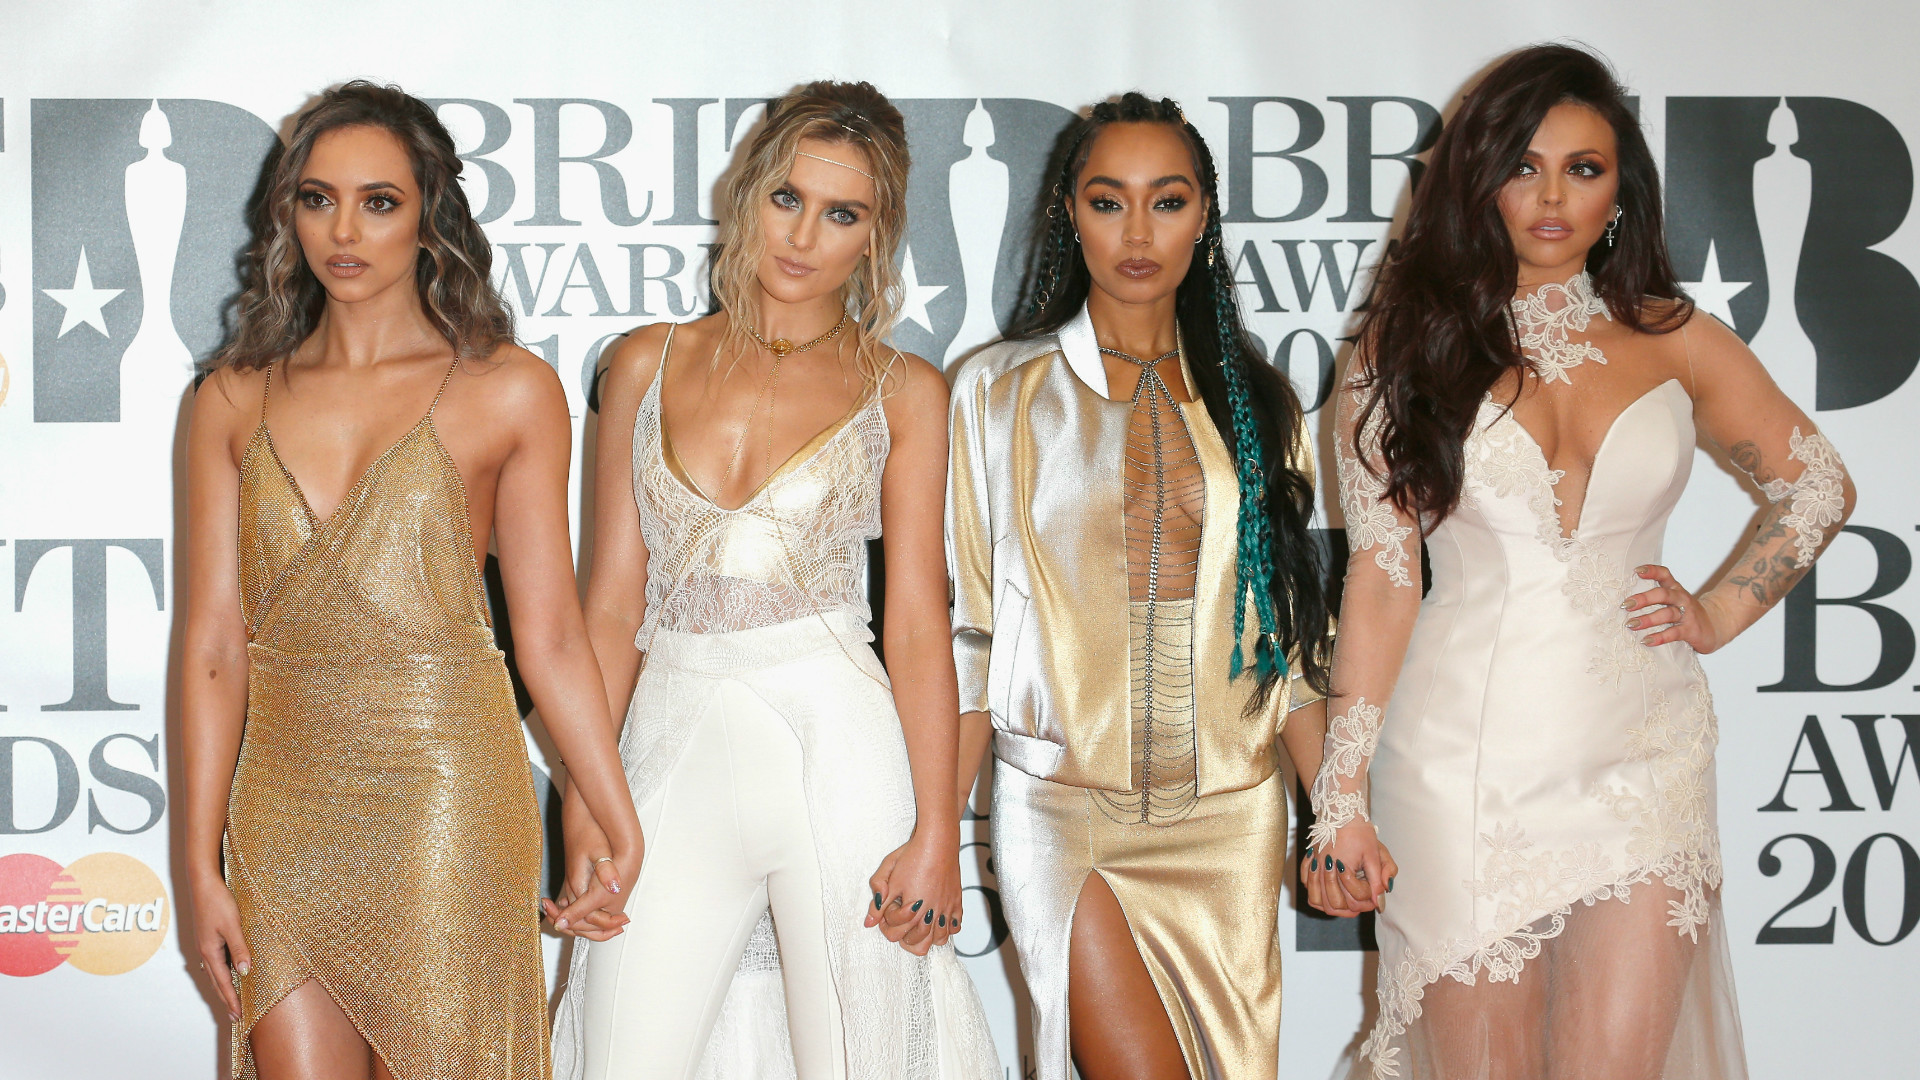 Little Mix at the Brits